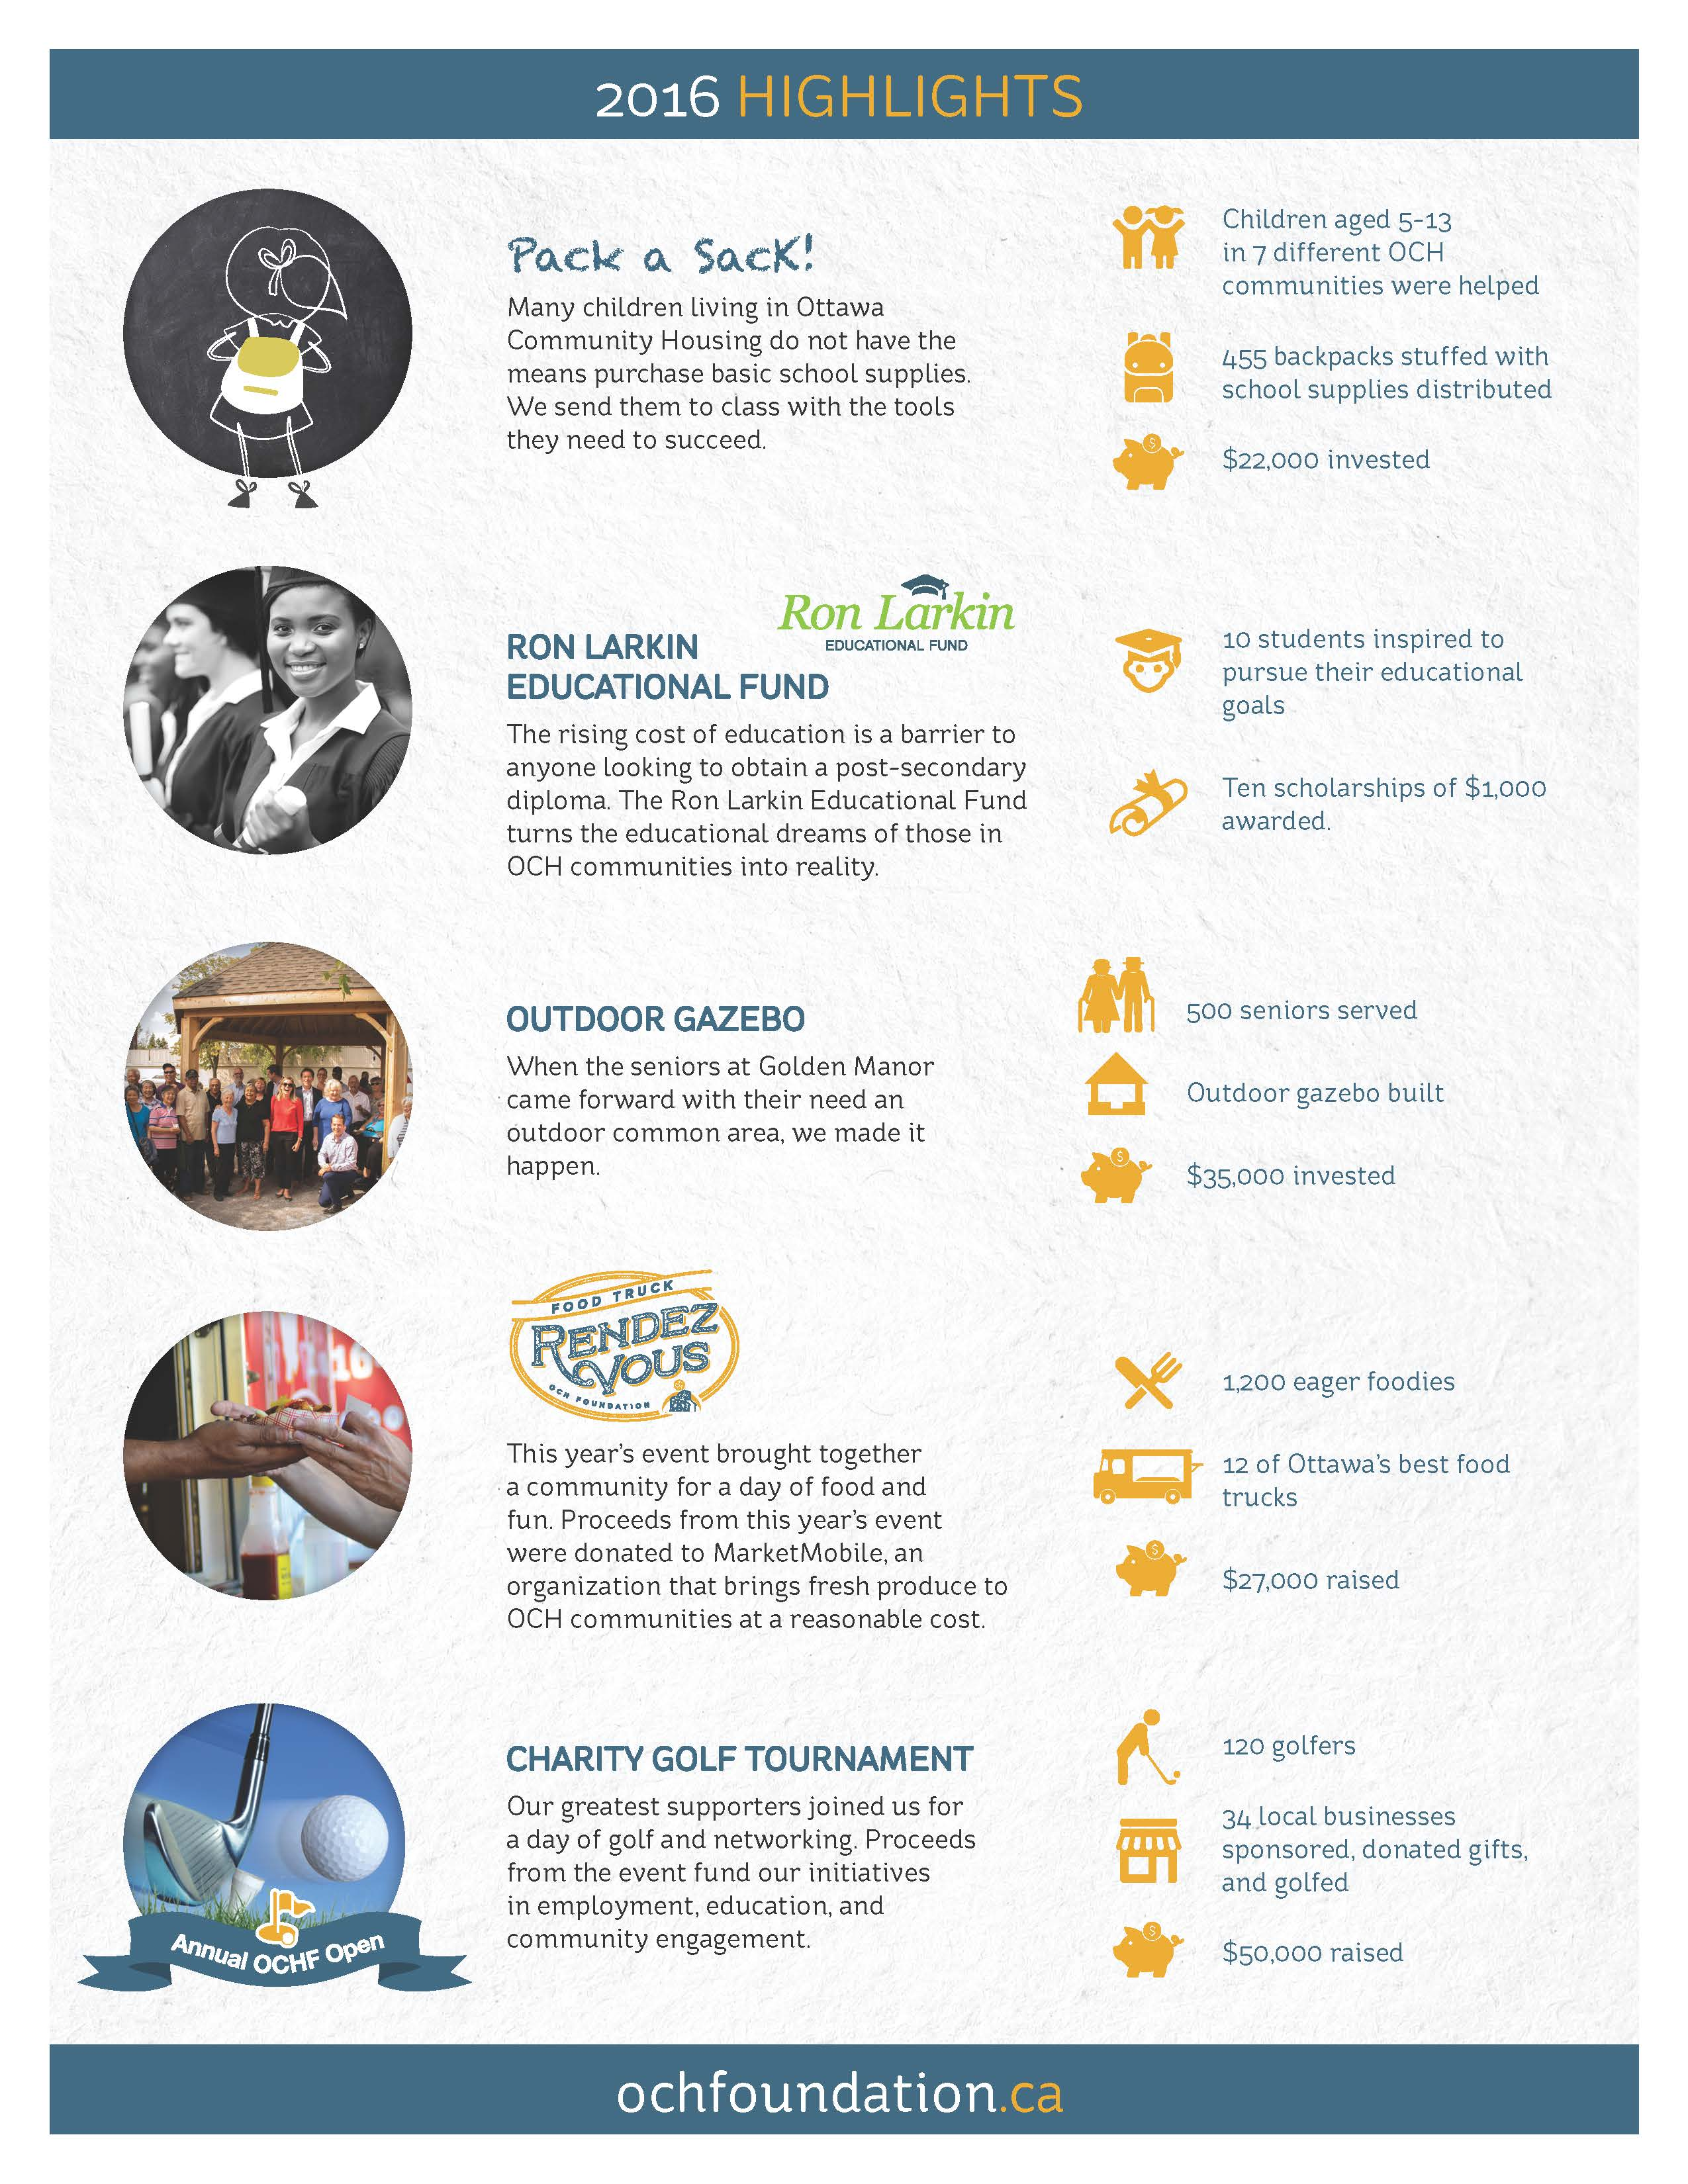 ochf_2016highlight_infographic-2_page_2